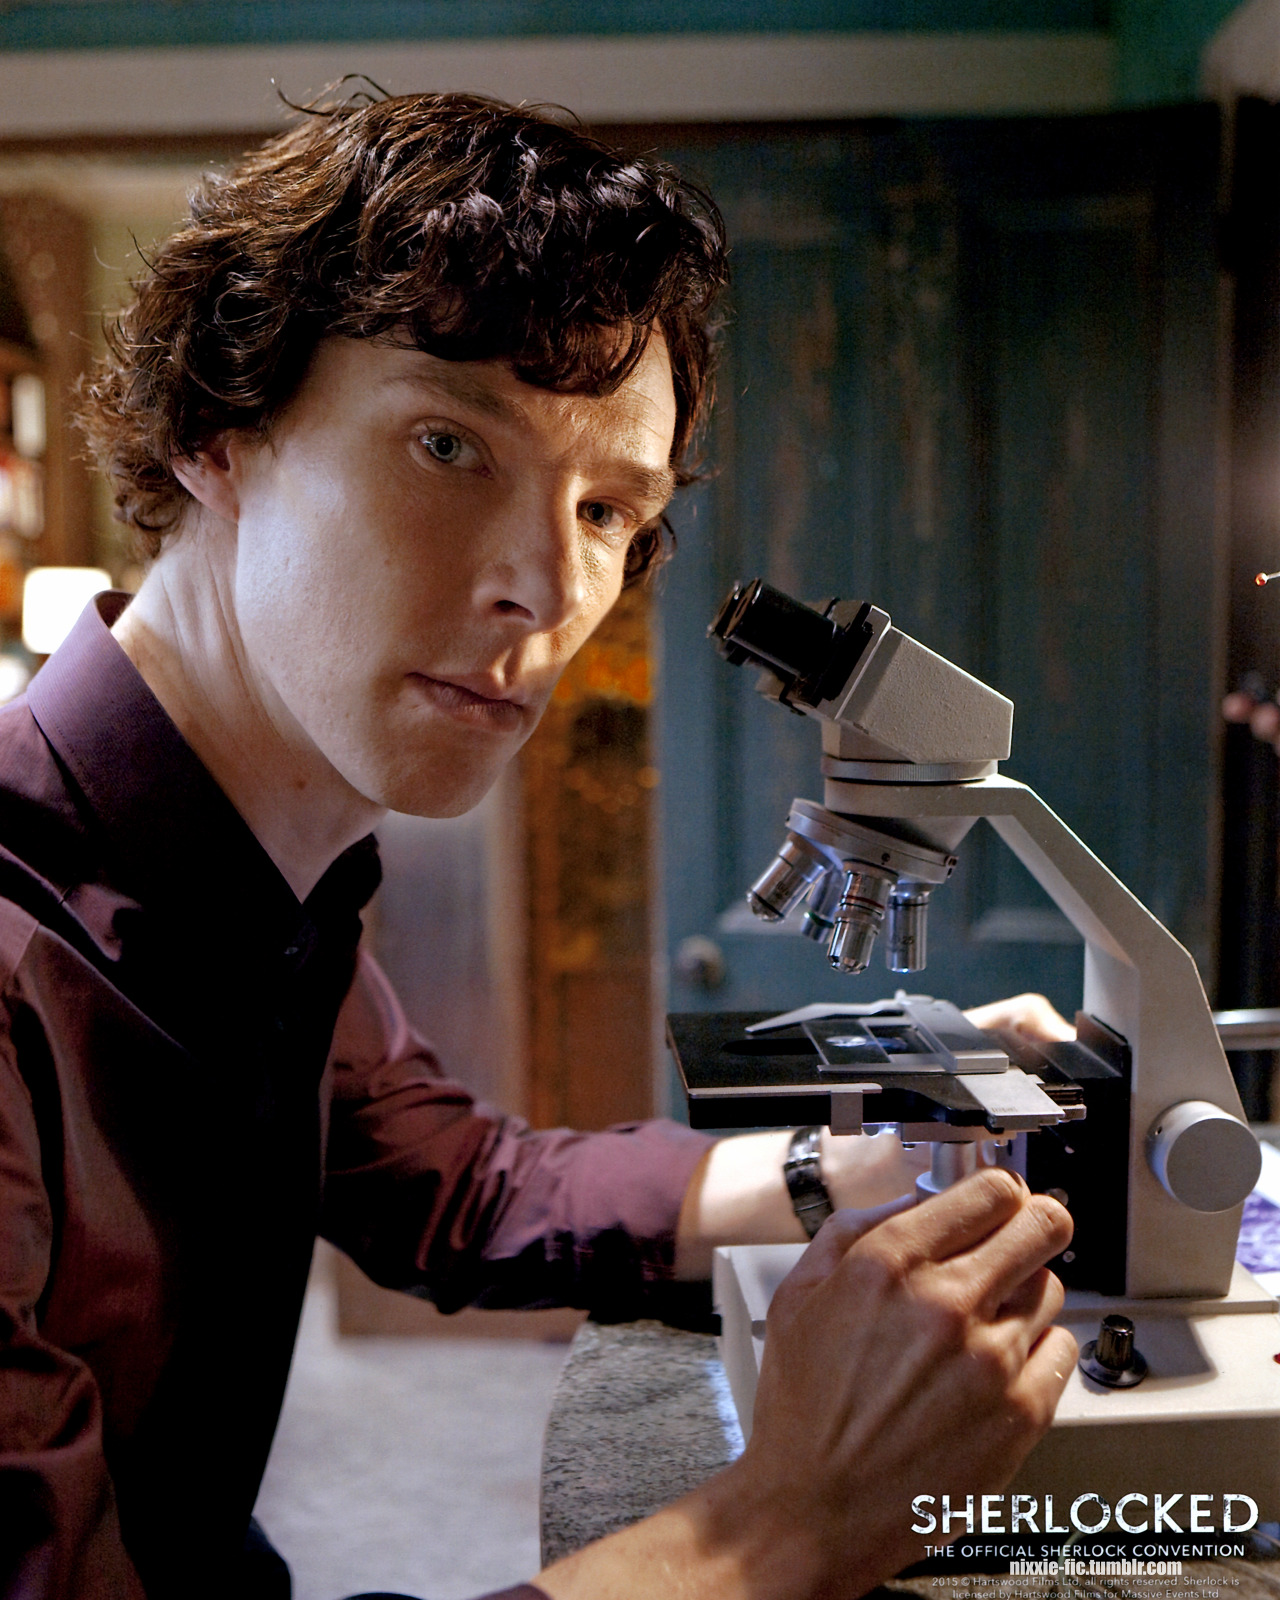 nixxie-fic: New pic - 28 - The Great Game Production Still - Sherlock Holmes at his microscope - Please link back if you use for edits etc. Get the Highest Res here: (4800x6000) Sherlocked Promo Pictures: (John outside court) (Moriarty in front of stained glass) (Greg Lestrade White BG) (Sherlock outside Irenes) (Sherlock Pilot photoshoot) (Sherlock at the wedding) (Mycroft outside Mummy's house) (Mycroft chin on brolly) (John in TEH Restaurant) (Mycroft Leaning on his Brolly) (John Watson Black BG) (Sherlock Light Grey BG S3) (Sherlock w/ Fur Collar)